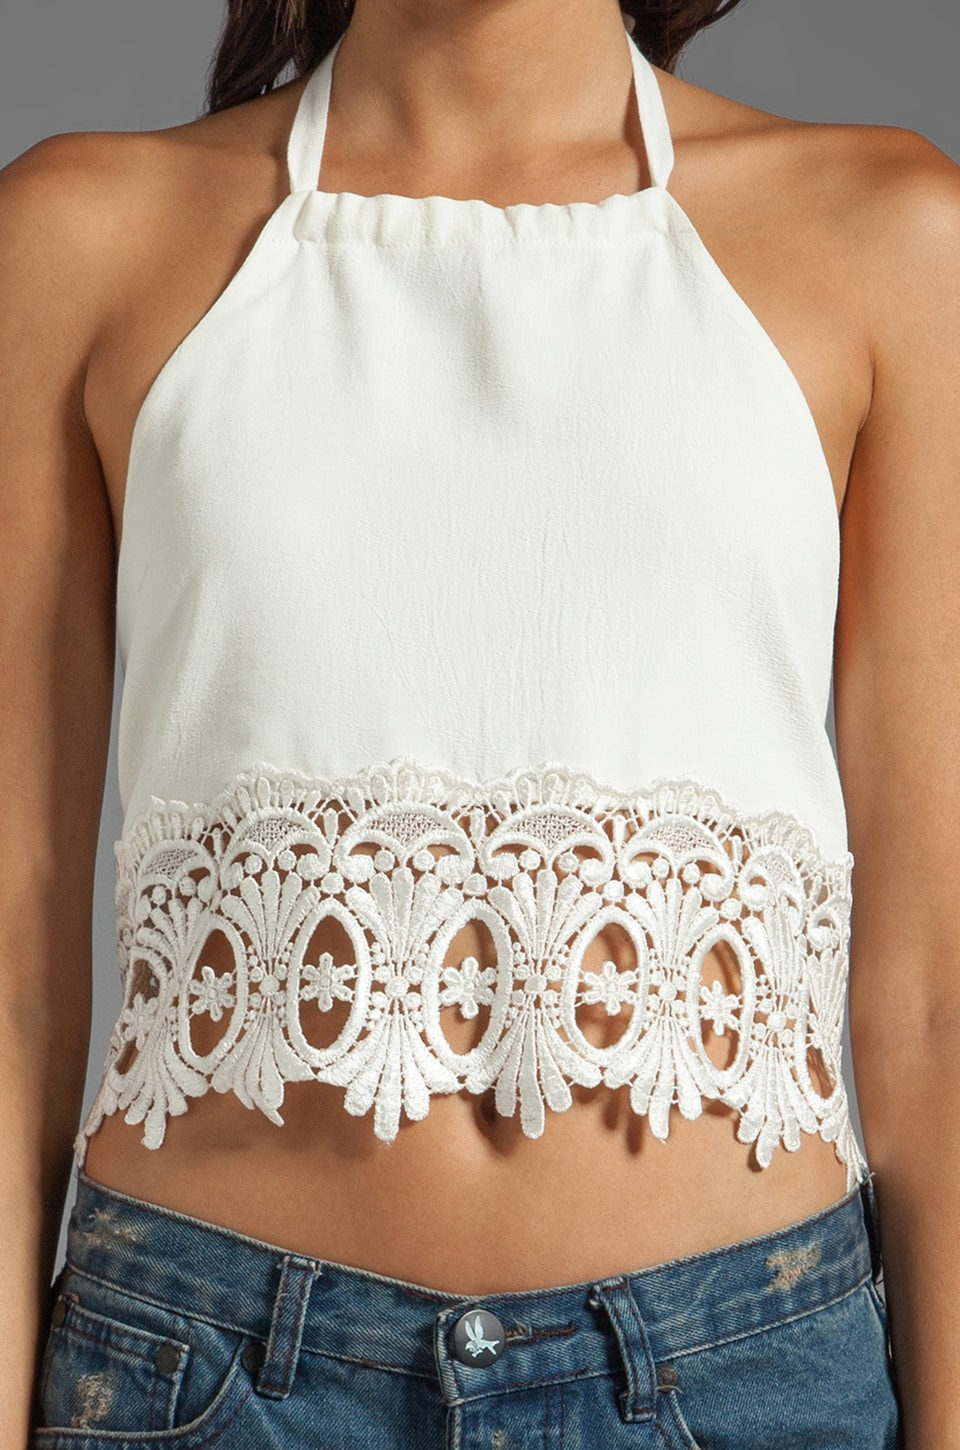 STONE_COLD_FOX Guerrilla Lace Crop Top in White